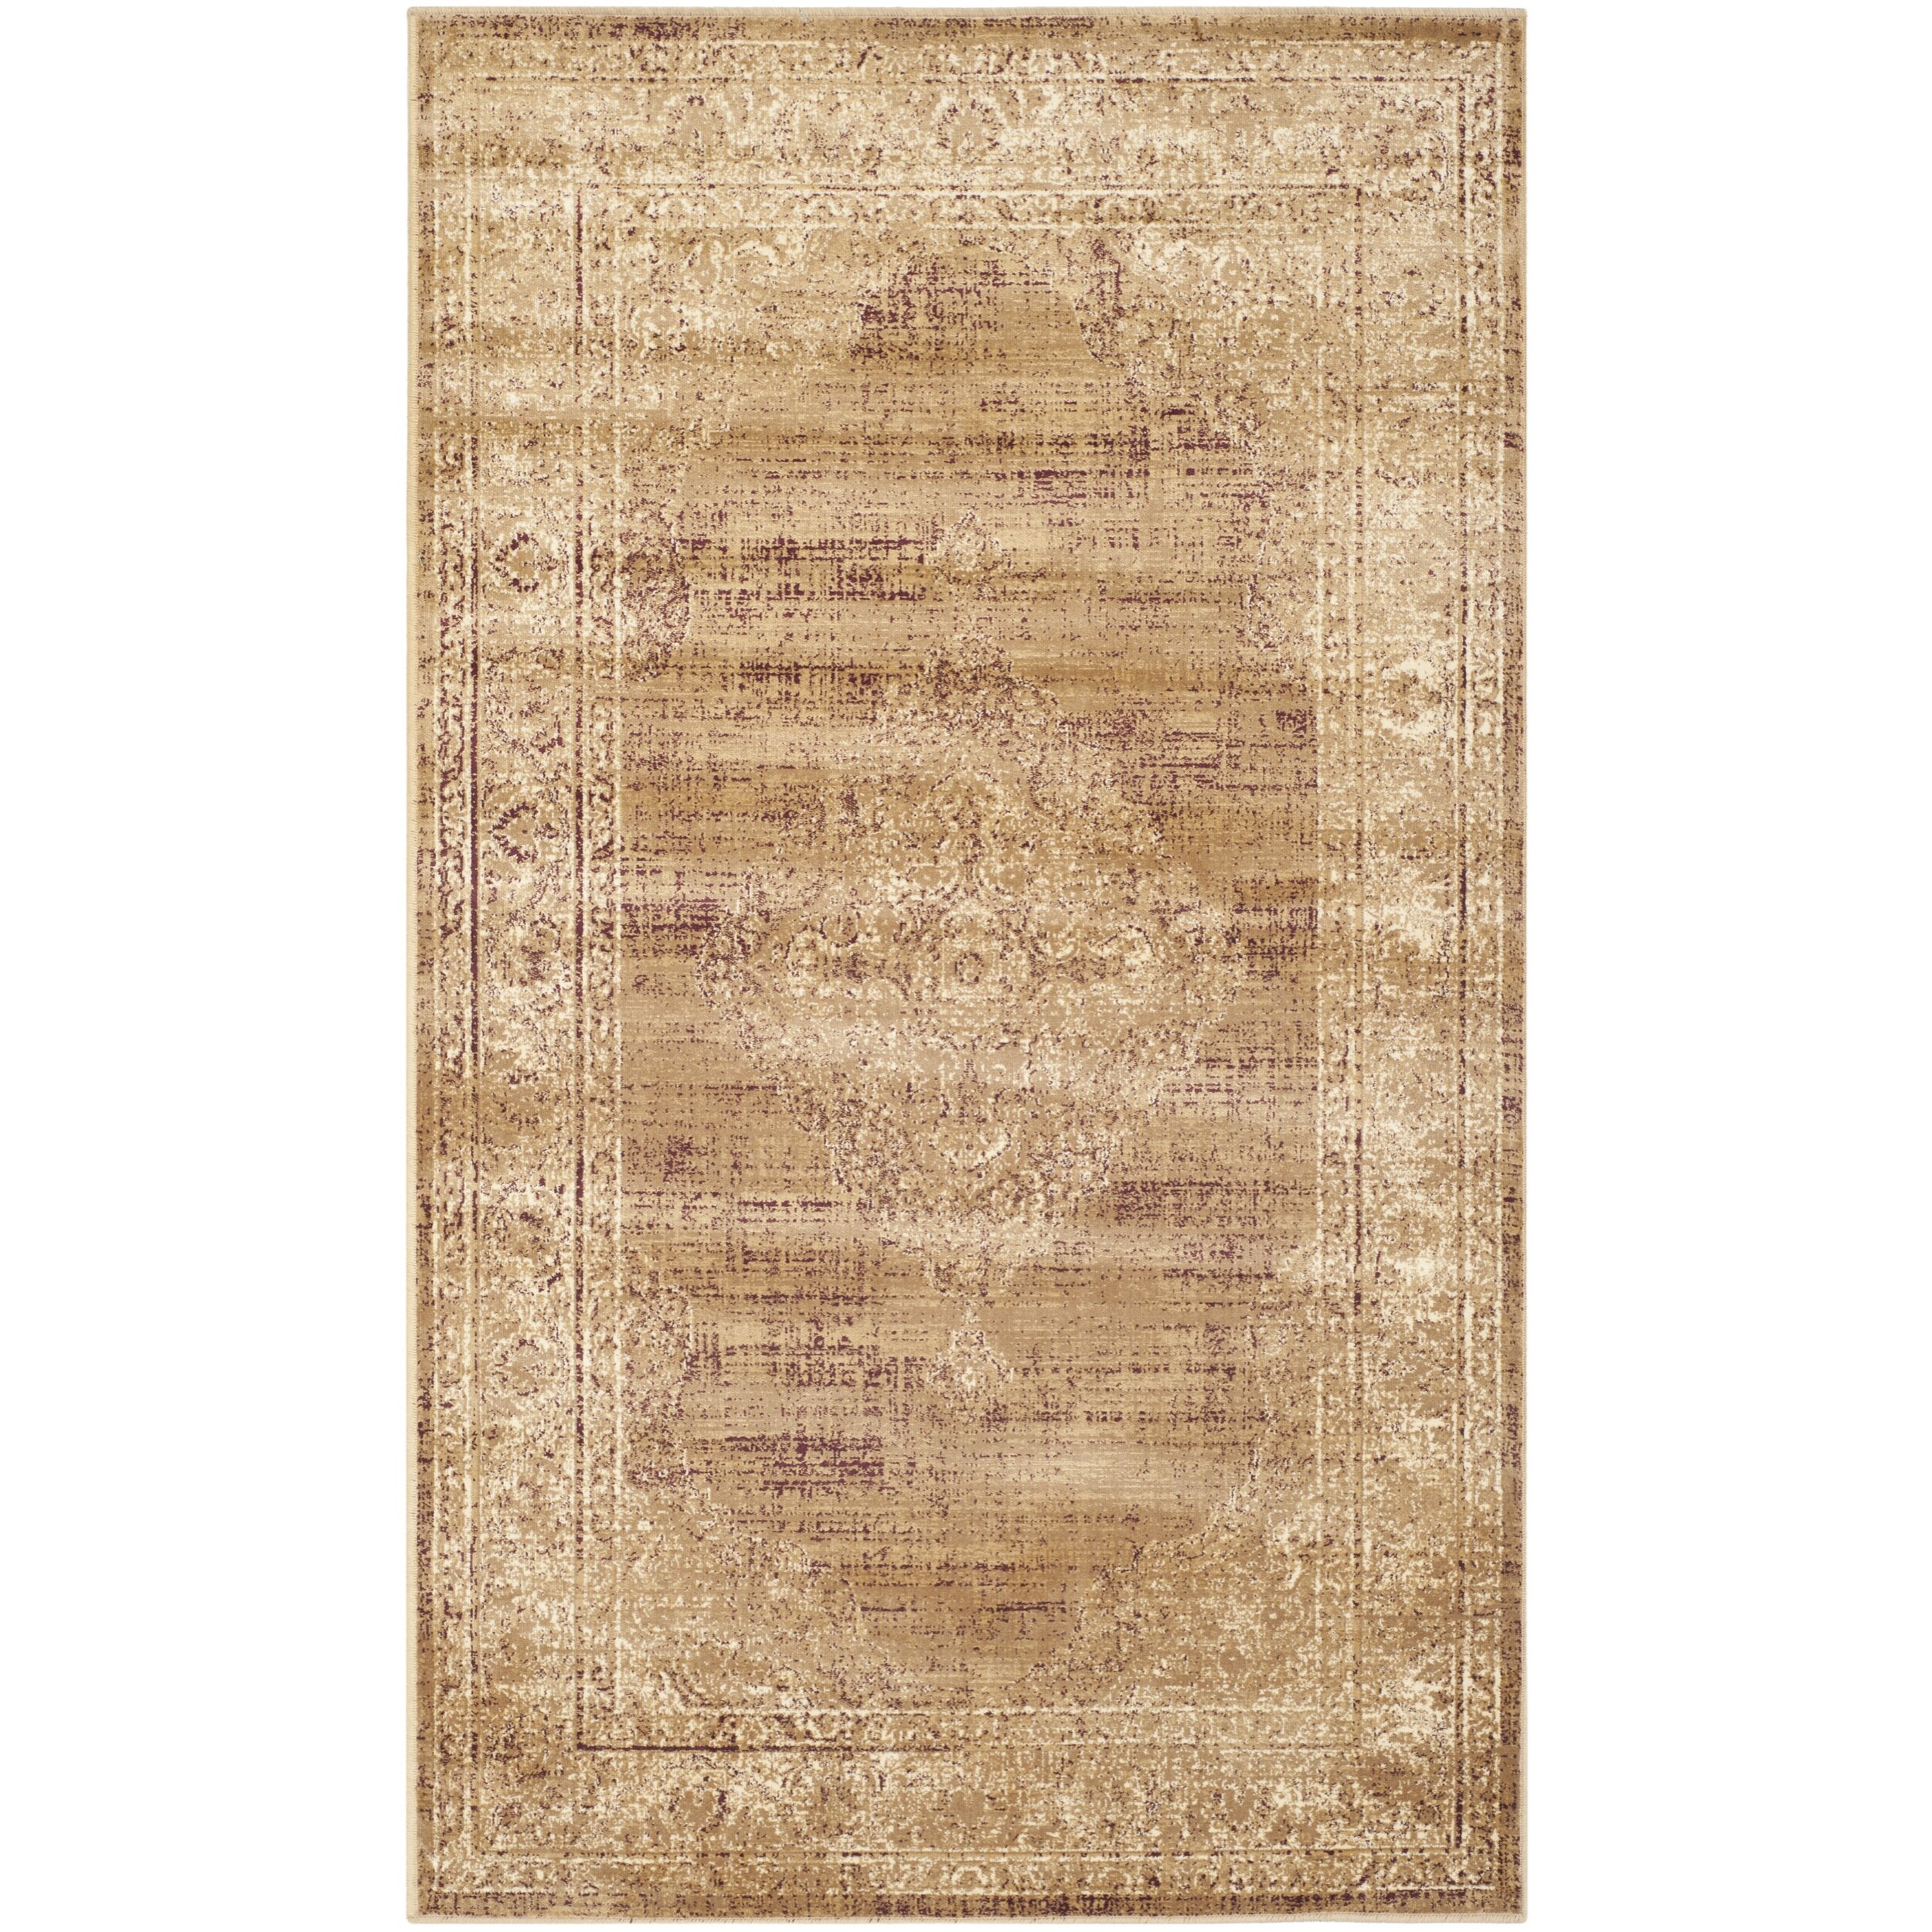 Safavieh Vintage Taupe Outdoor Area Rug & Reviews